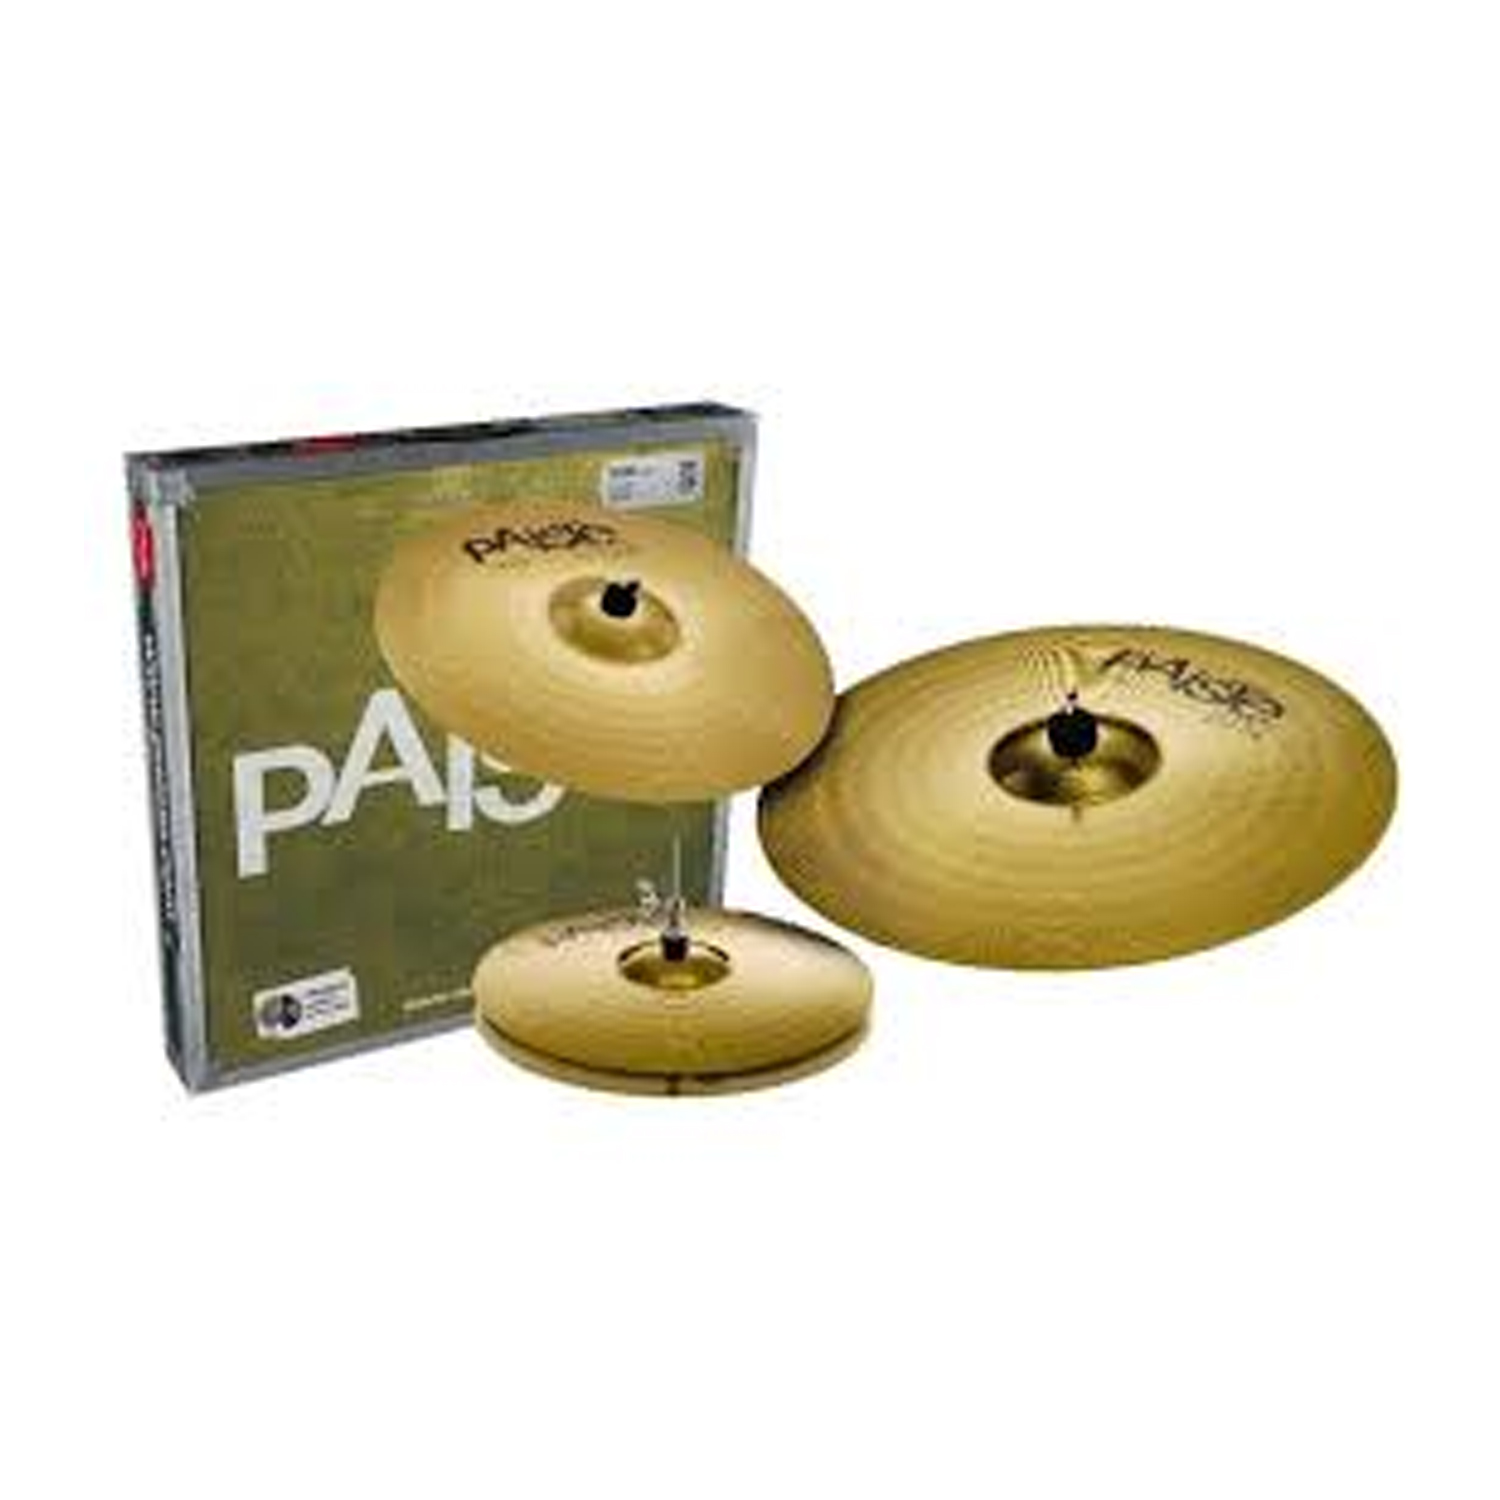 musicworks drums percussion cymbal packs cymbal packs paiste 101 cymbal pack 14 inch. Black Bedroom Furniture Sets. Home Design Ideas